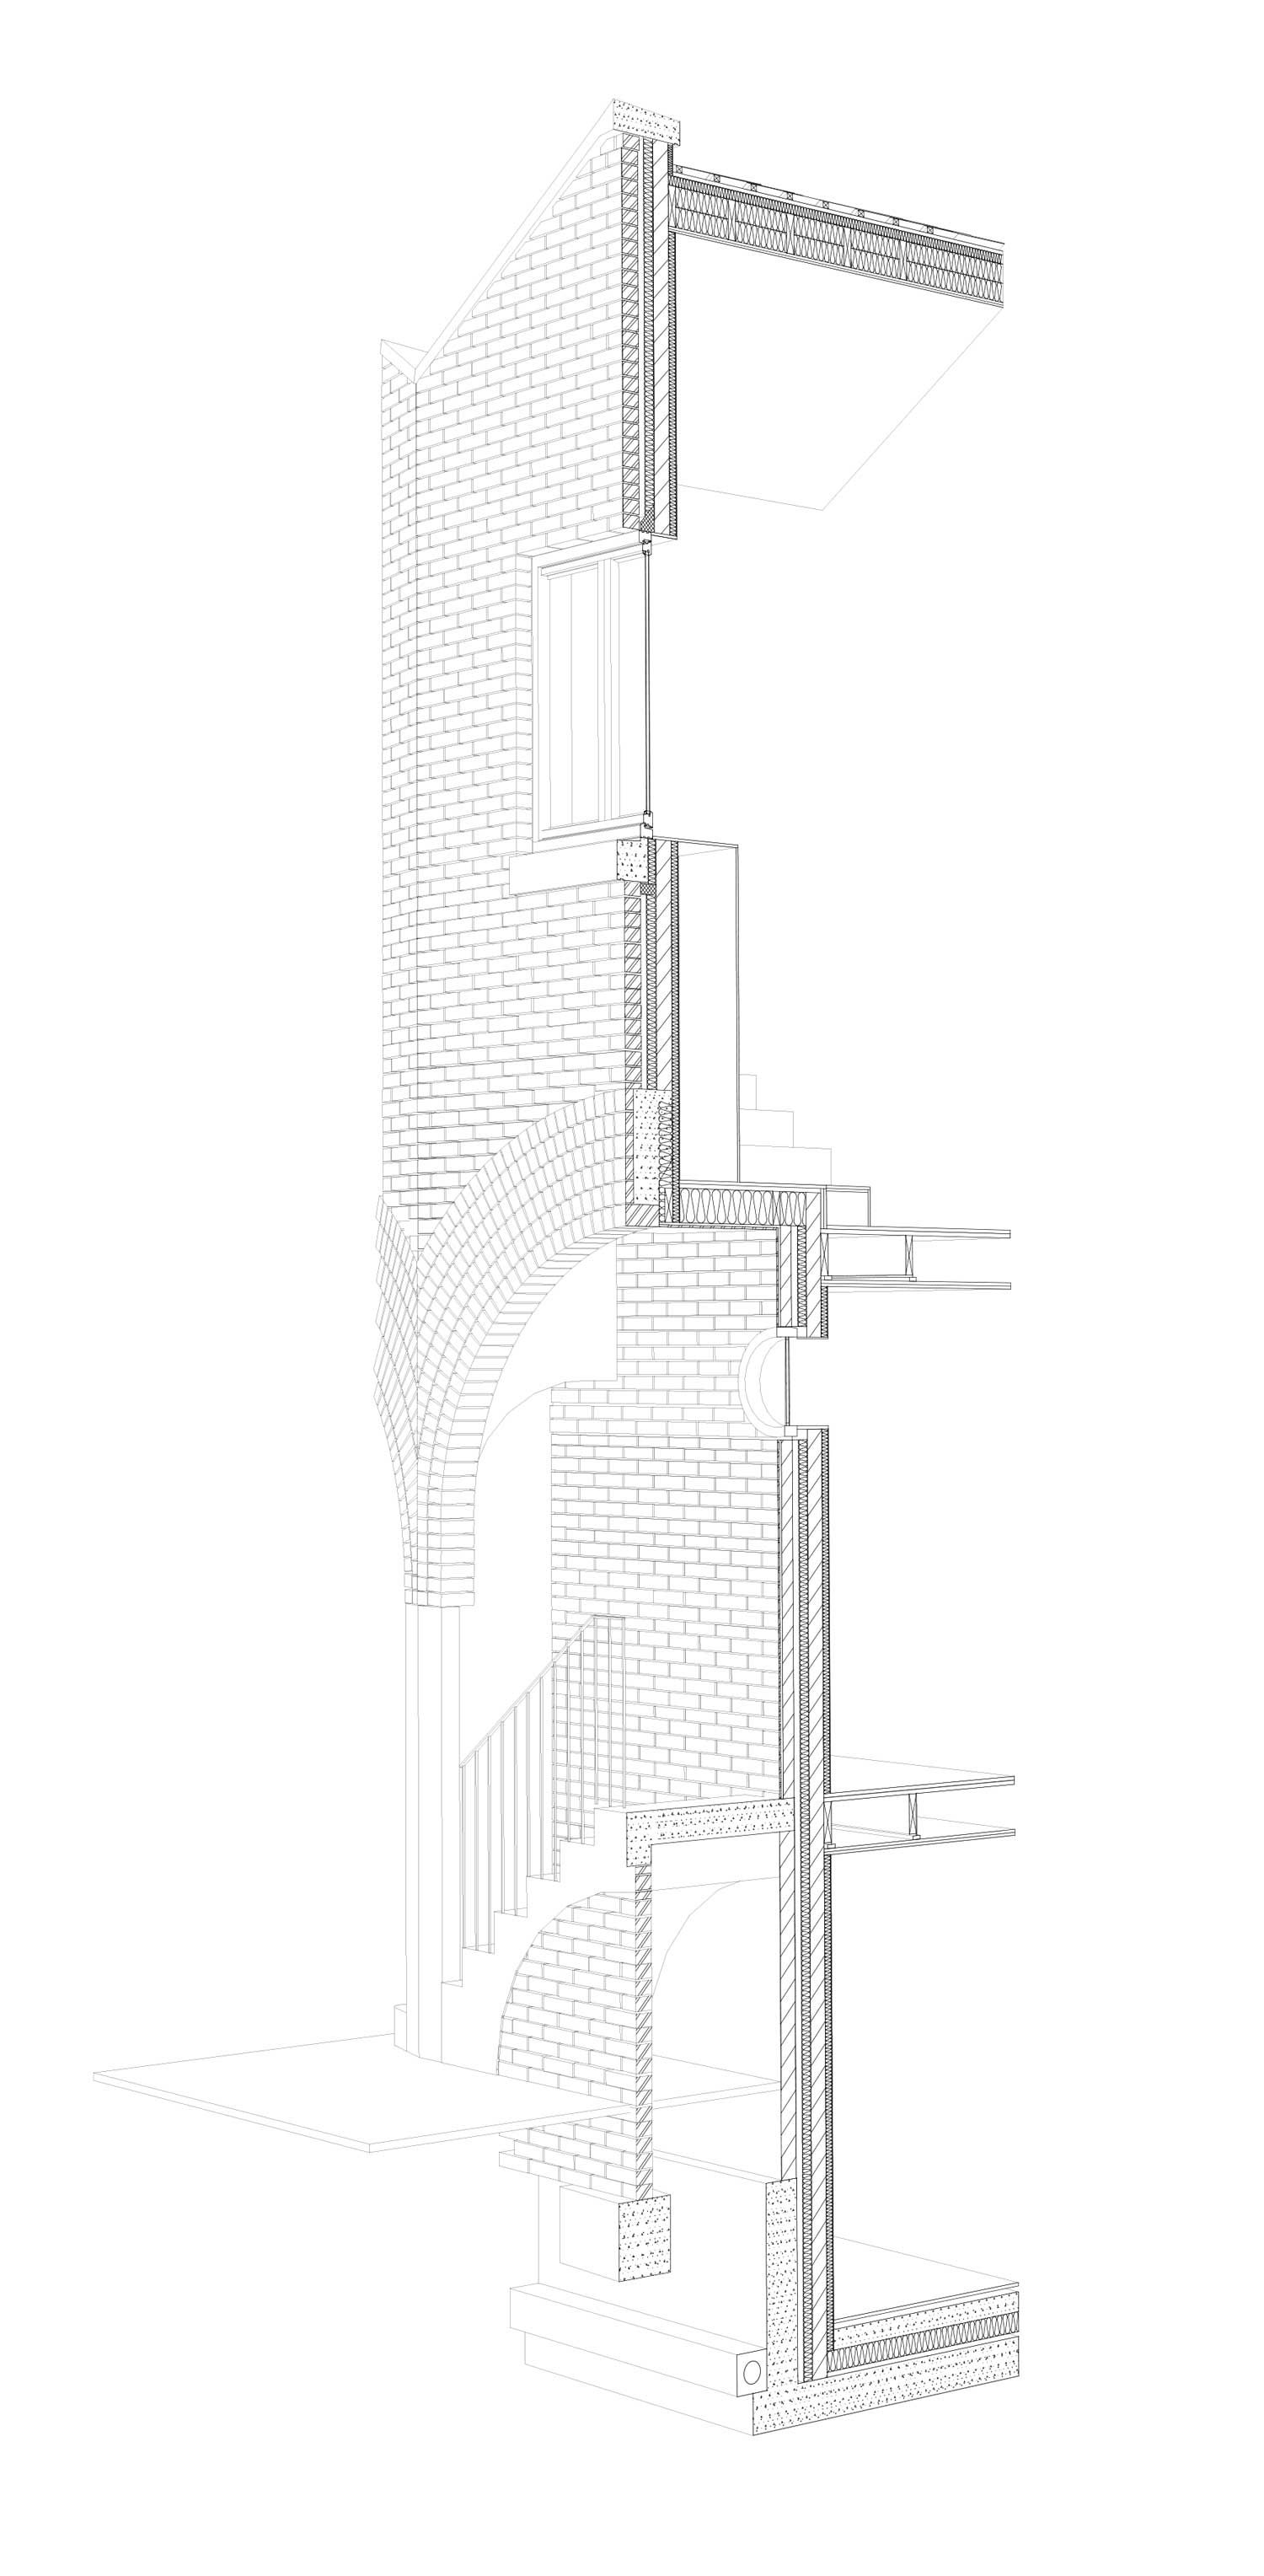 Tectonics Architectural Section Architecture Drawing Diagram Architecture